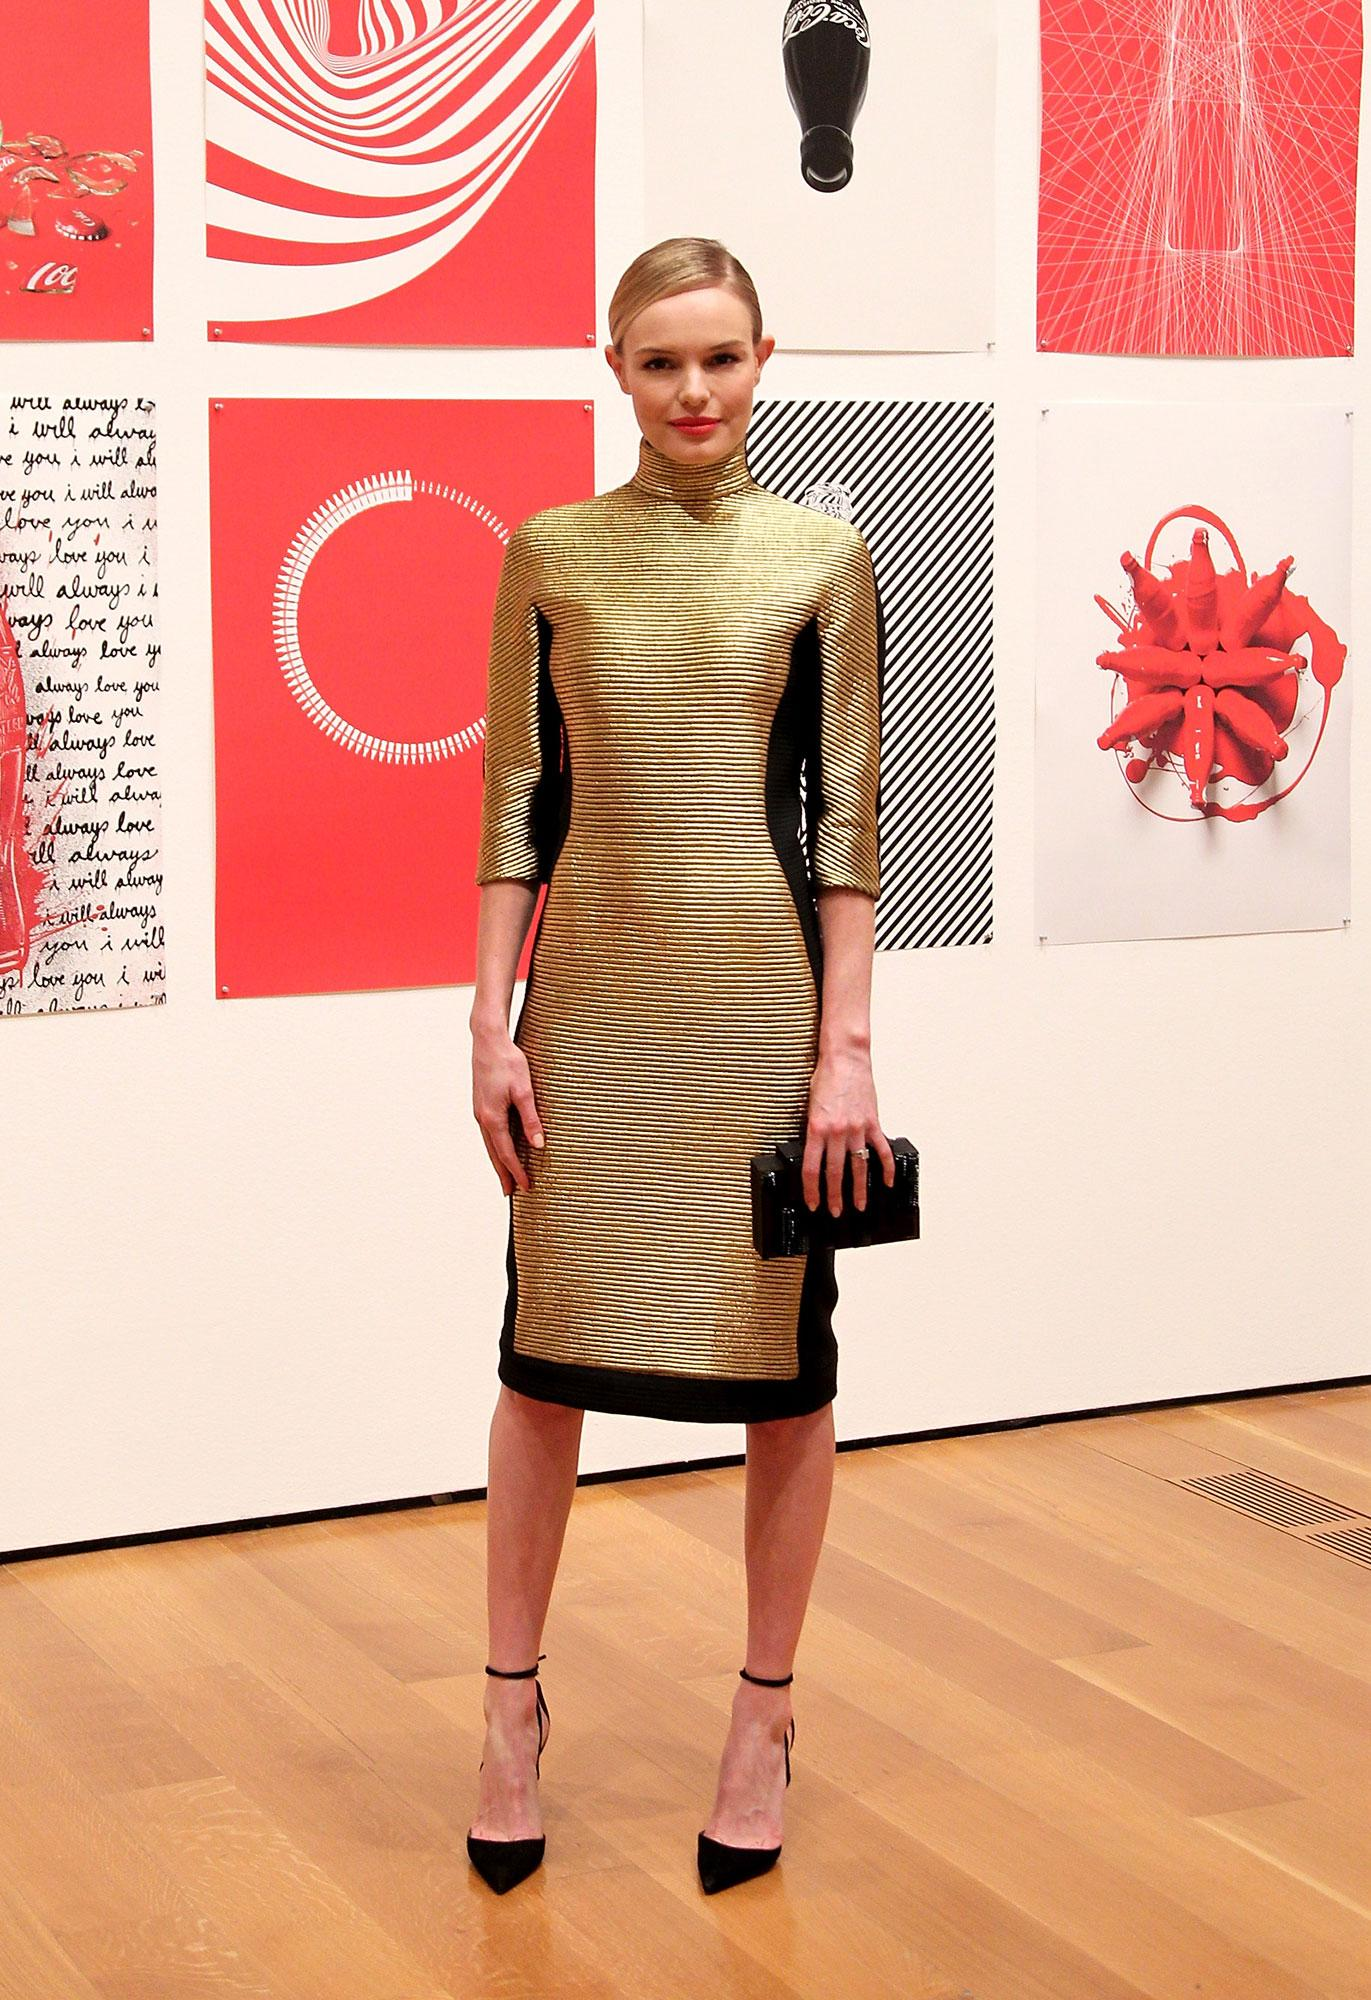 .@KateBosworth is best dressed in @AngelSanchezPR: http://t.co/yyceCHXSxg http://t.co/zCBghKlfhu